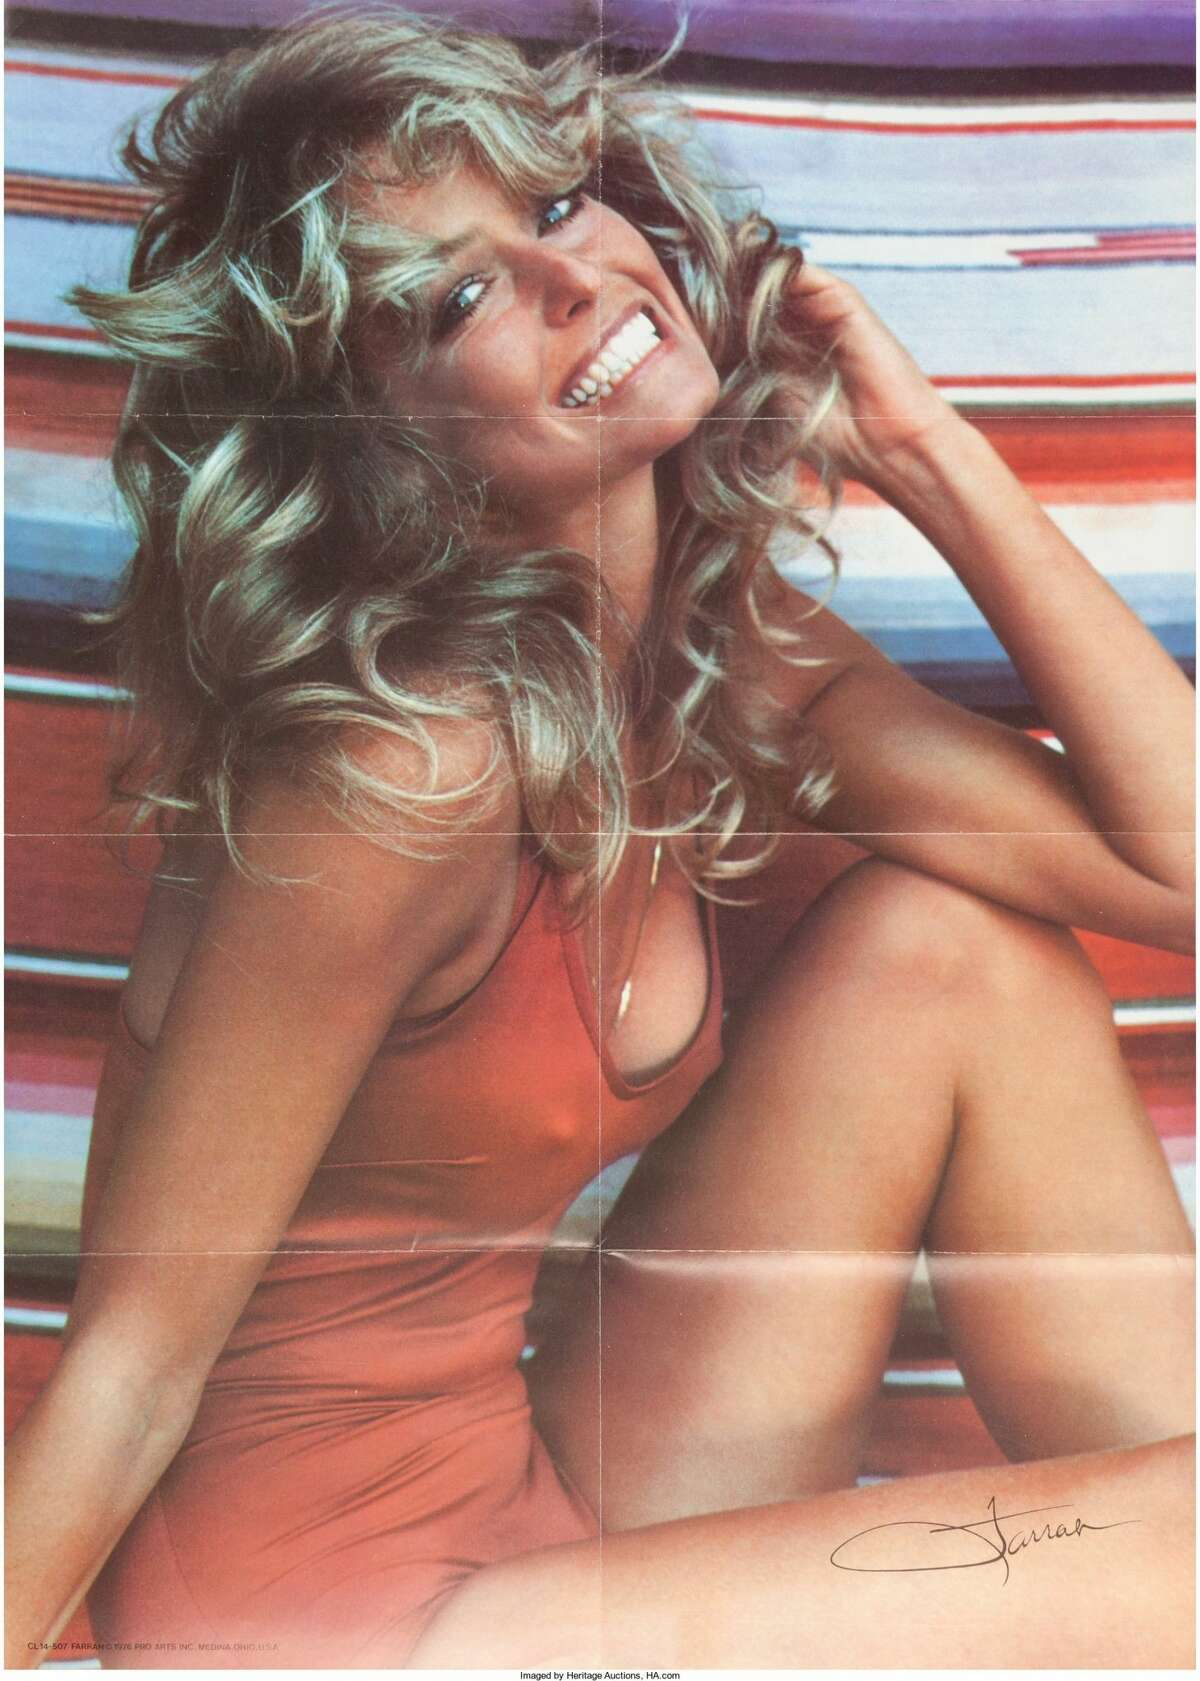 A Farrah Fawcett Personally-Owned Group of THE Posters, Circa 1970s. Quite possibly one of the most famous posters (and easily one of the biggest selling ones) of the 20th century; 36 total, depicting the star in her now infamous red one-piece bathing suit as she sits against a striped background, her facsimile signature of